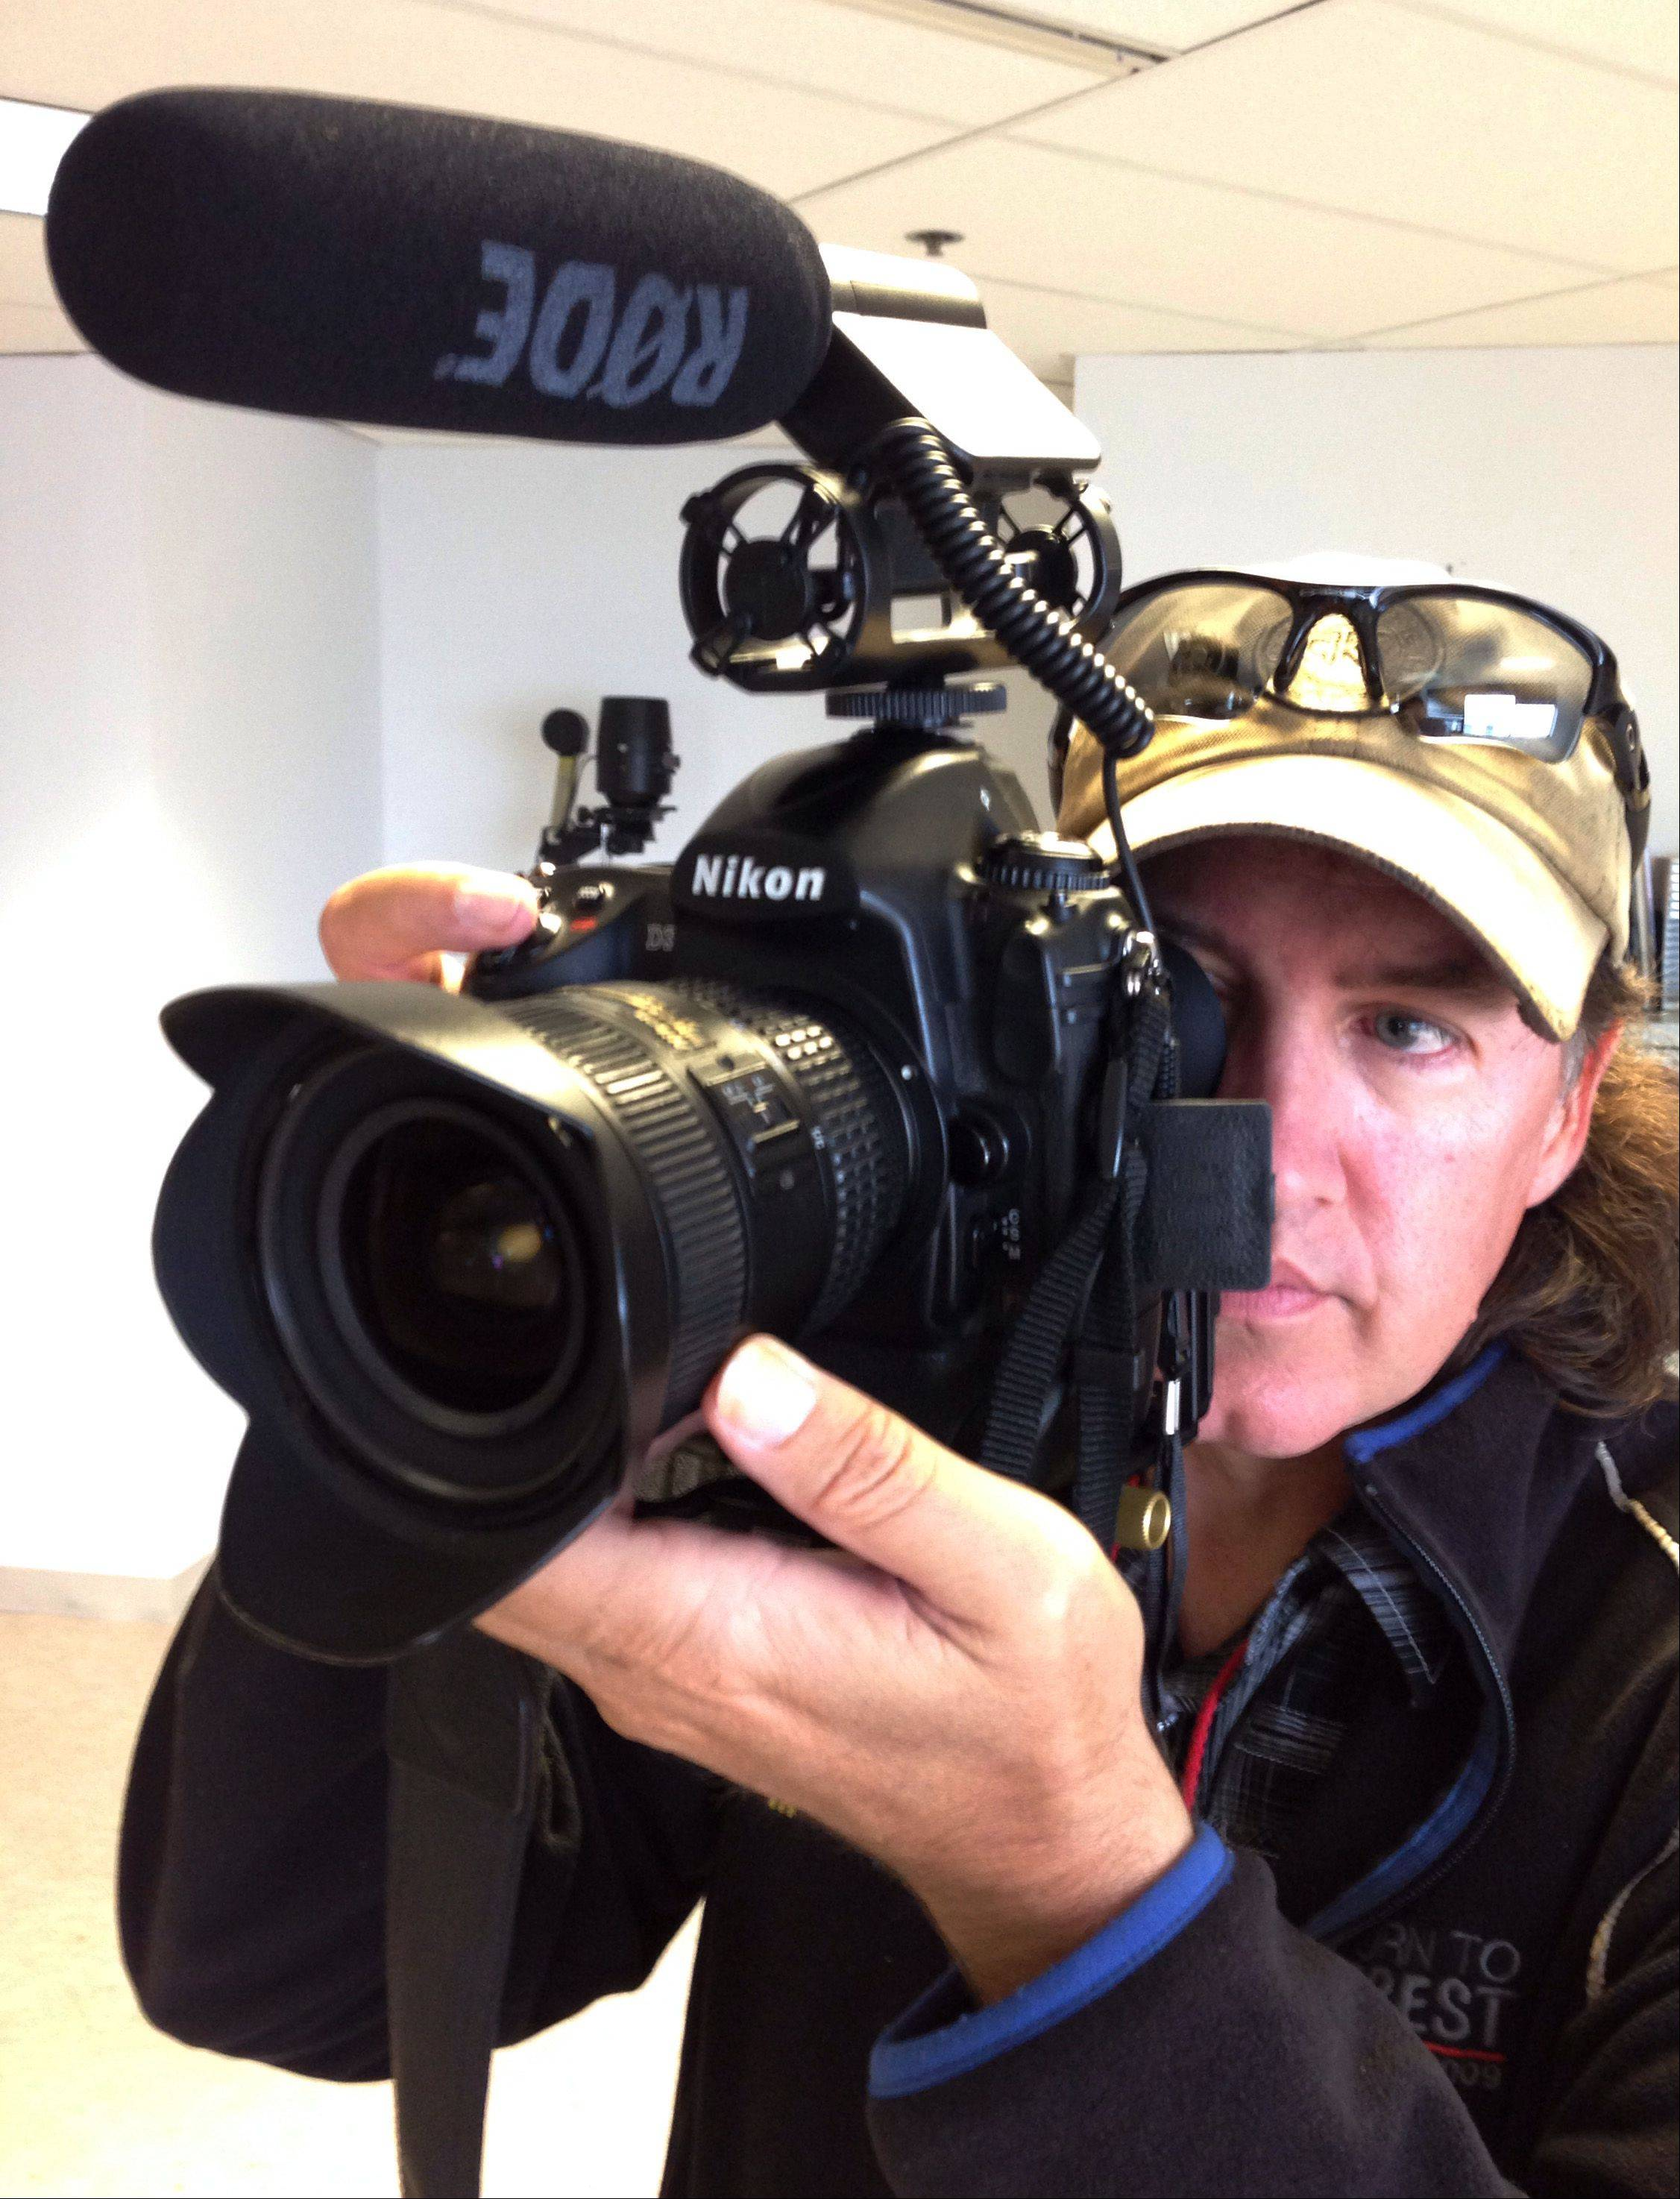 Daily Herald photojournalist Mark Welsh uses the latest digital video technology. The DSLR camera will shoot still images as well as high definition video.